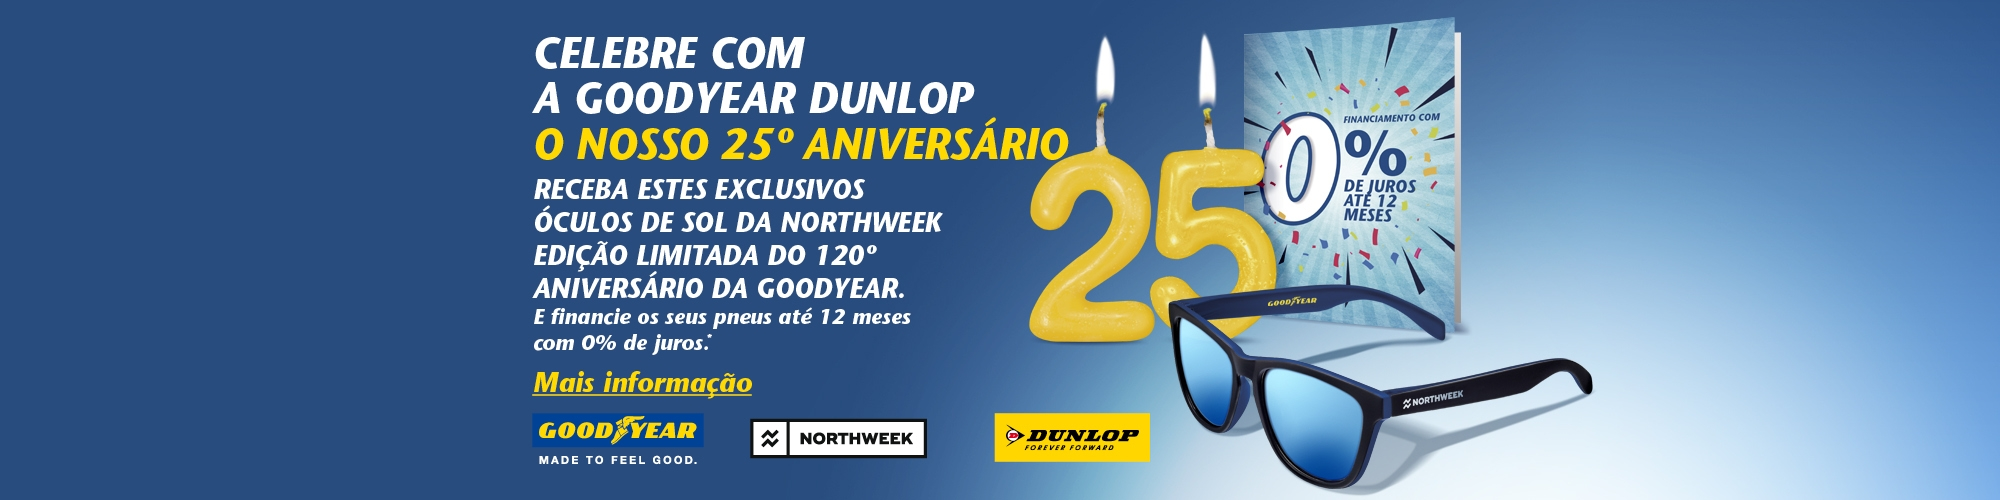 Goodyear 120 años - Gafas Northweek